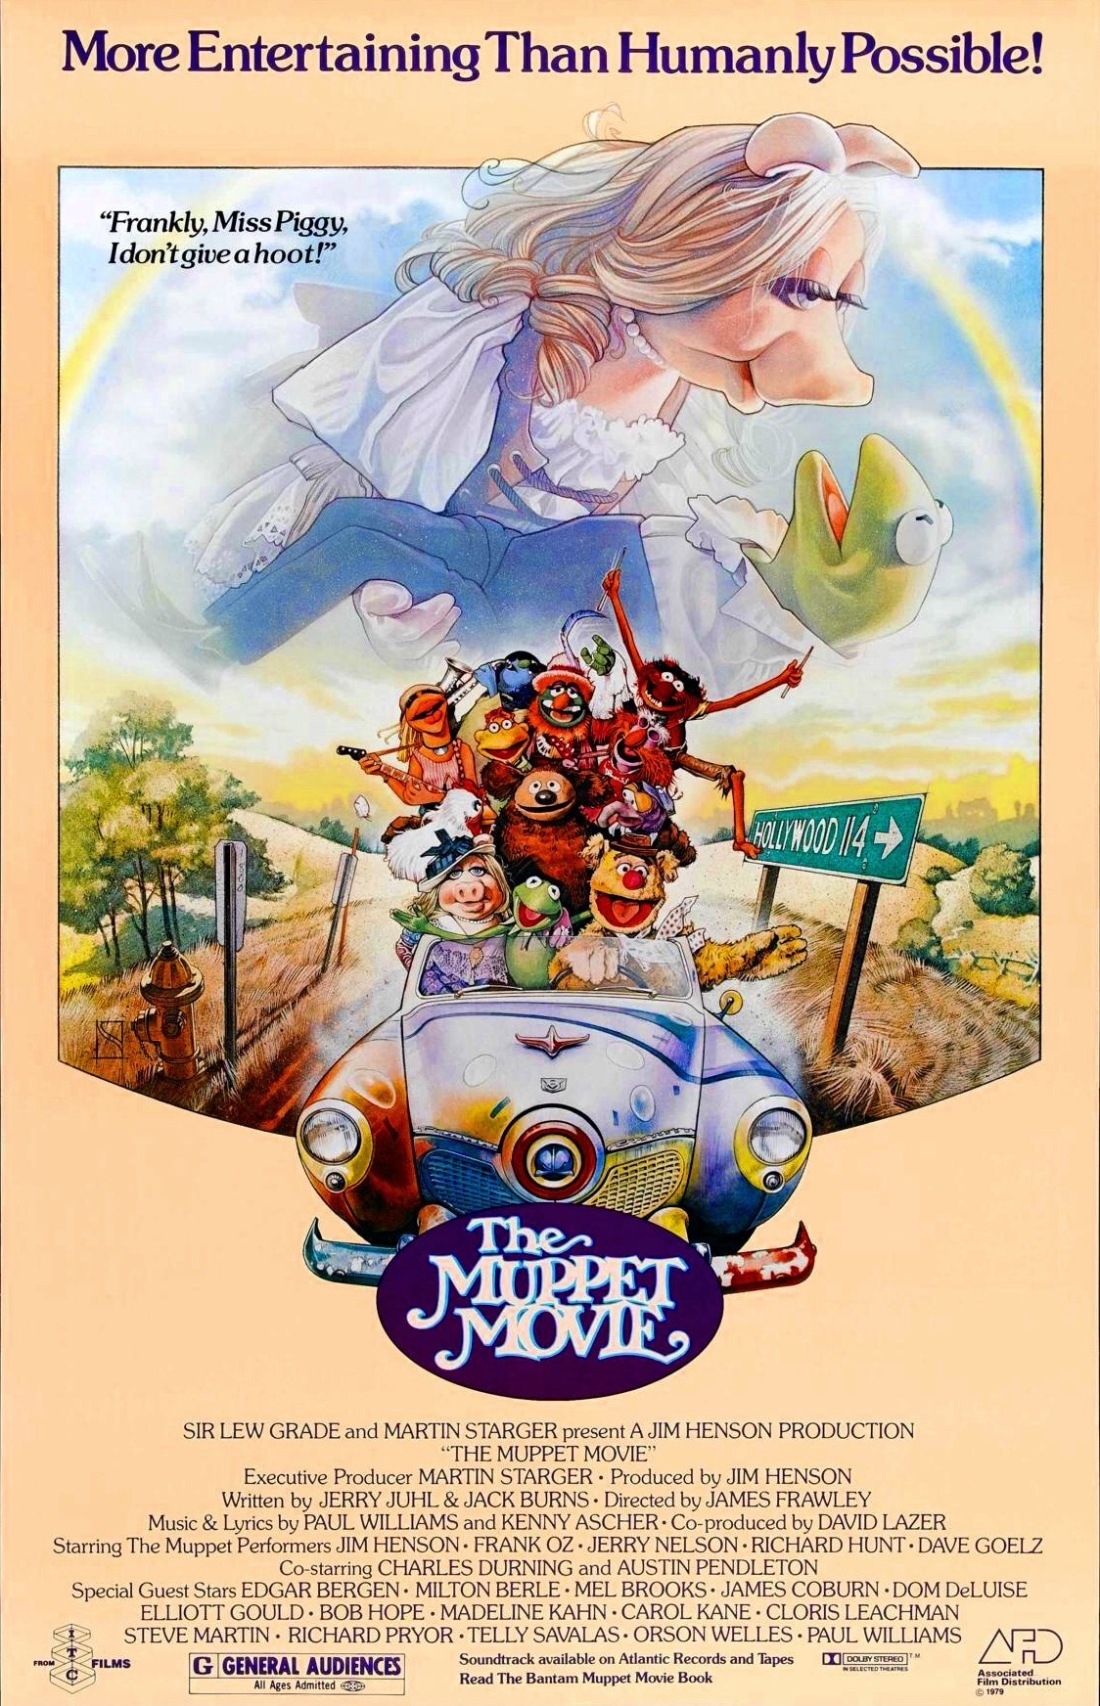 The Muppet Movie poster